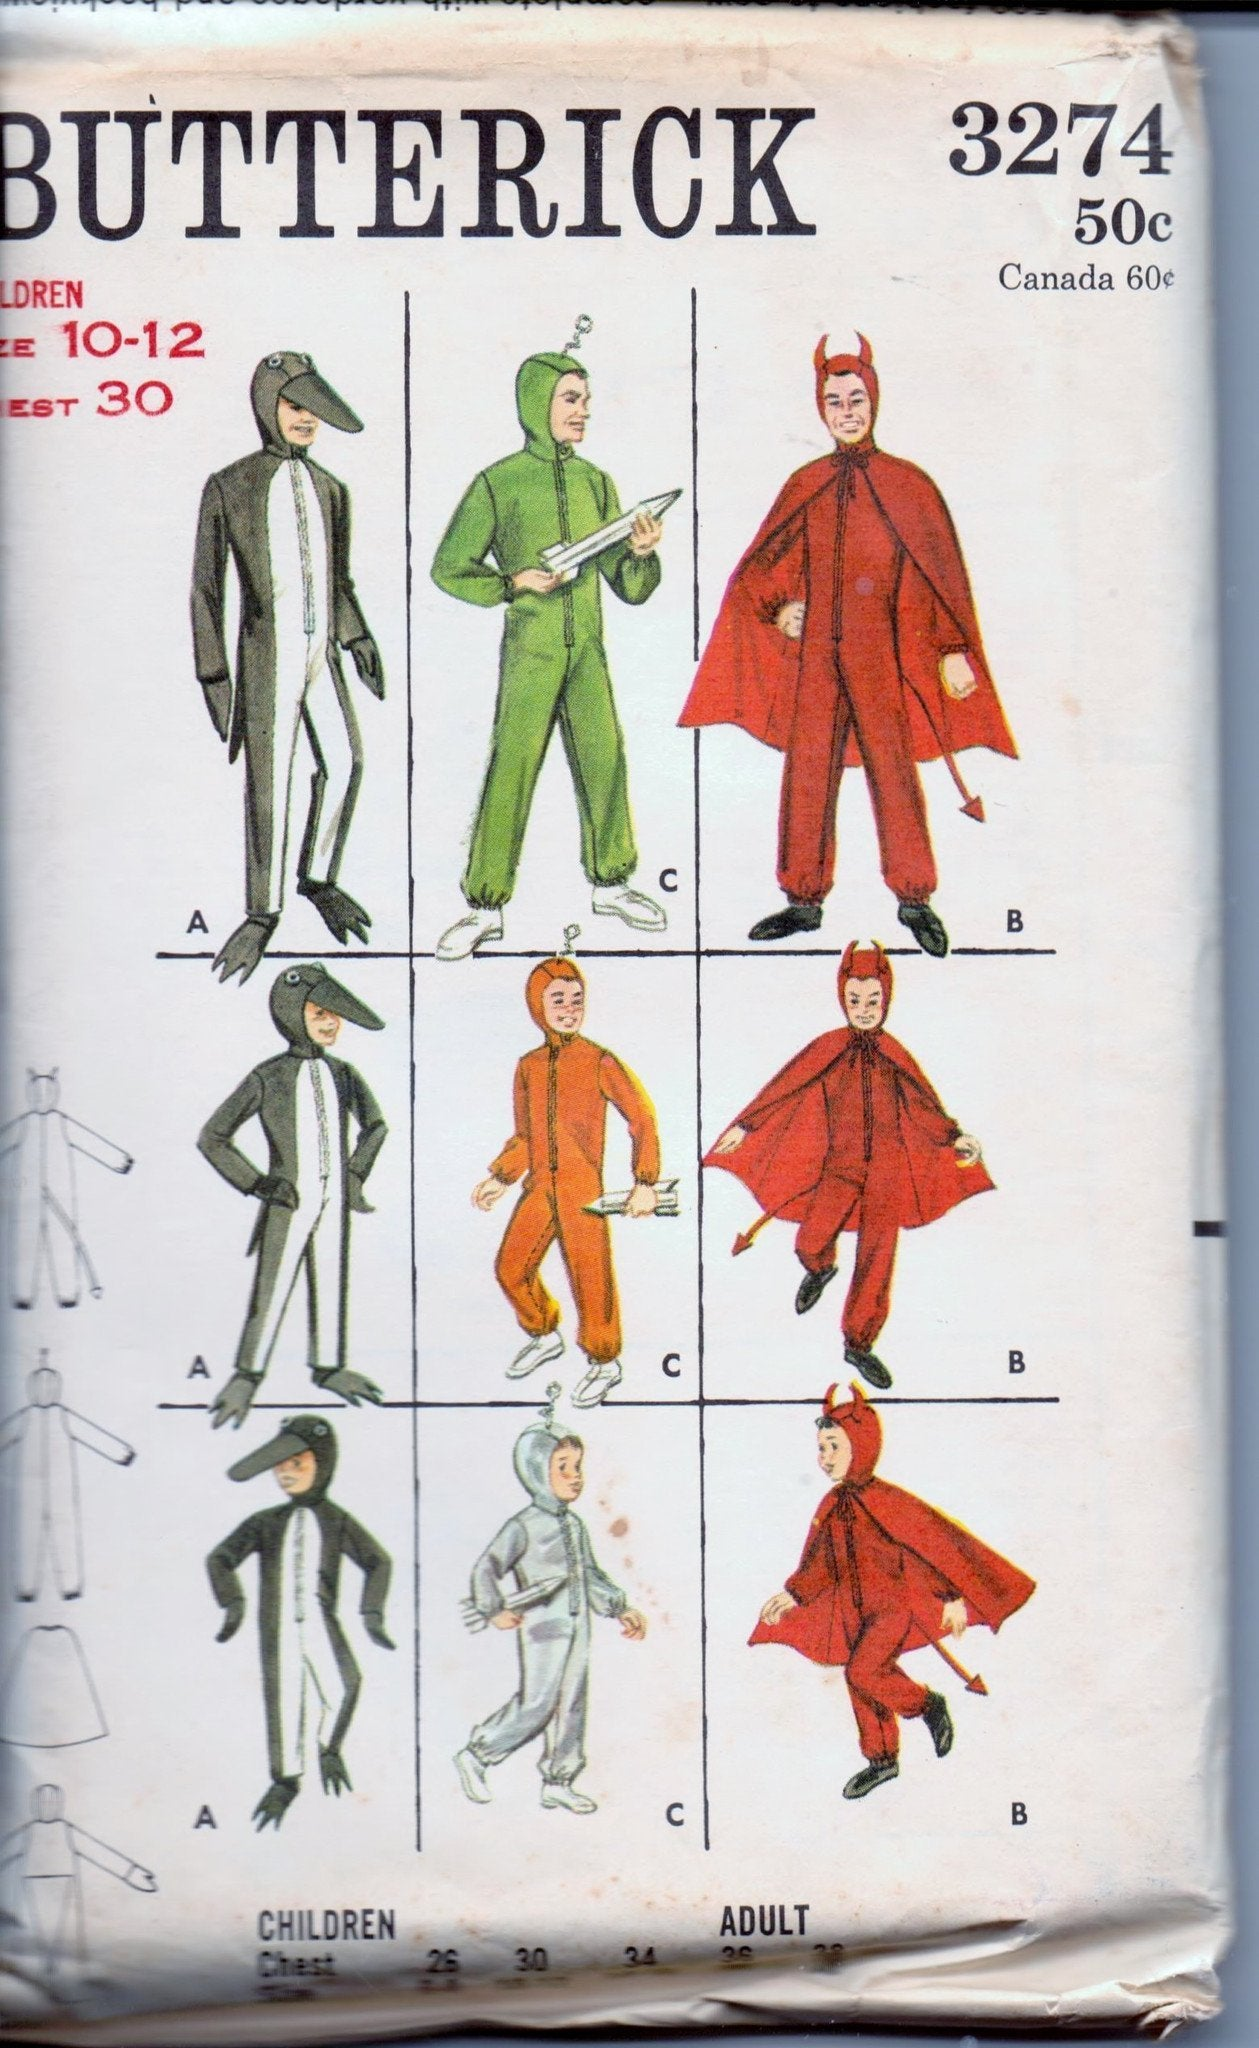 Butterick 3274 Children Penguin Devil Space Halloween Costume Vintage 60's Sewing Pattern - VintageStitching - Vintage Sewing Patterns